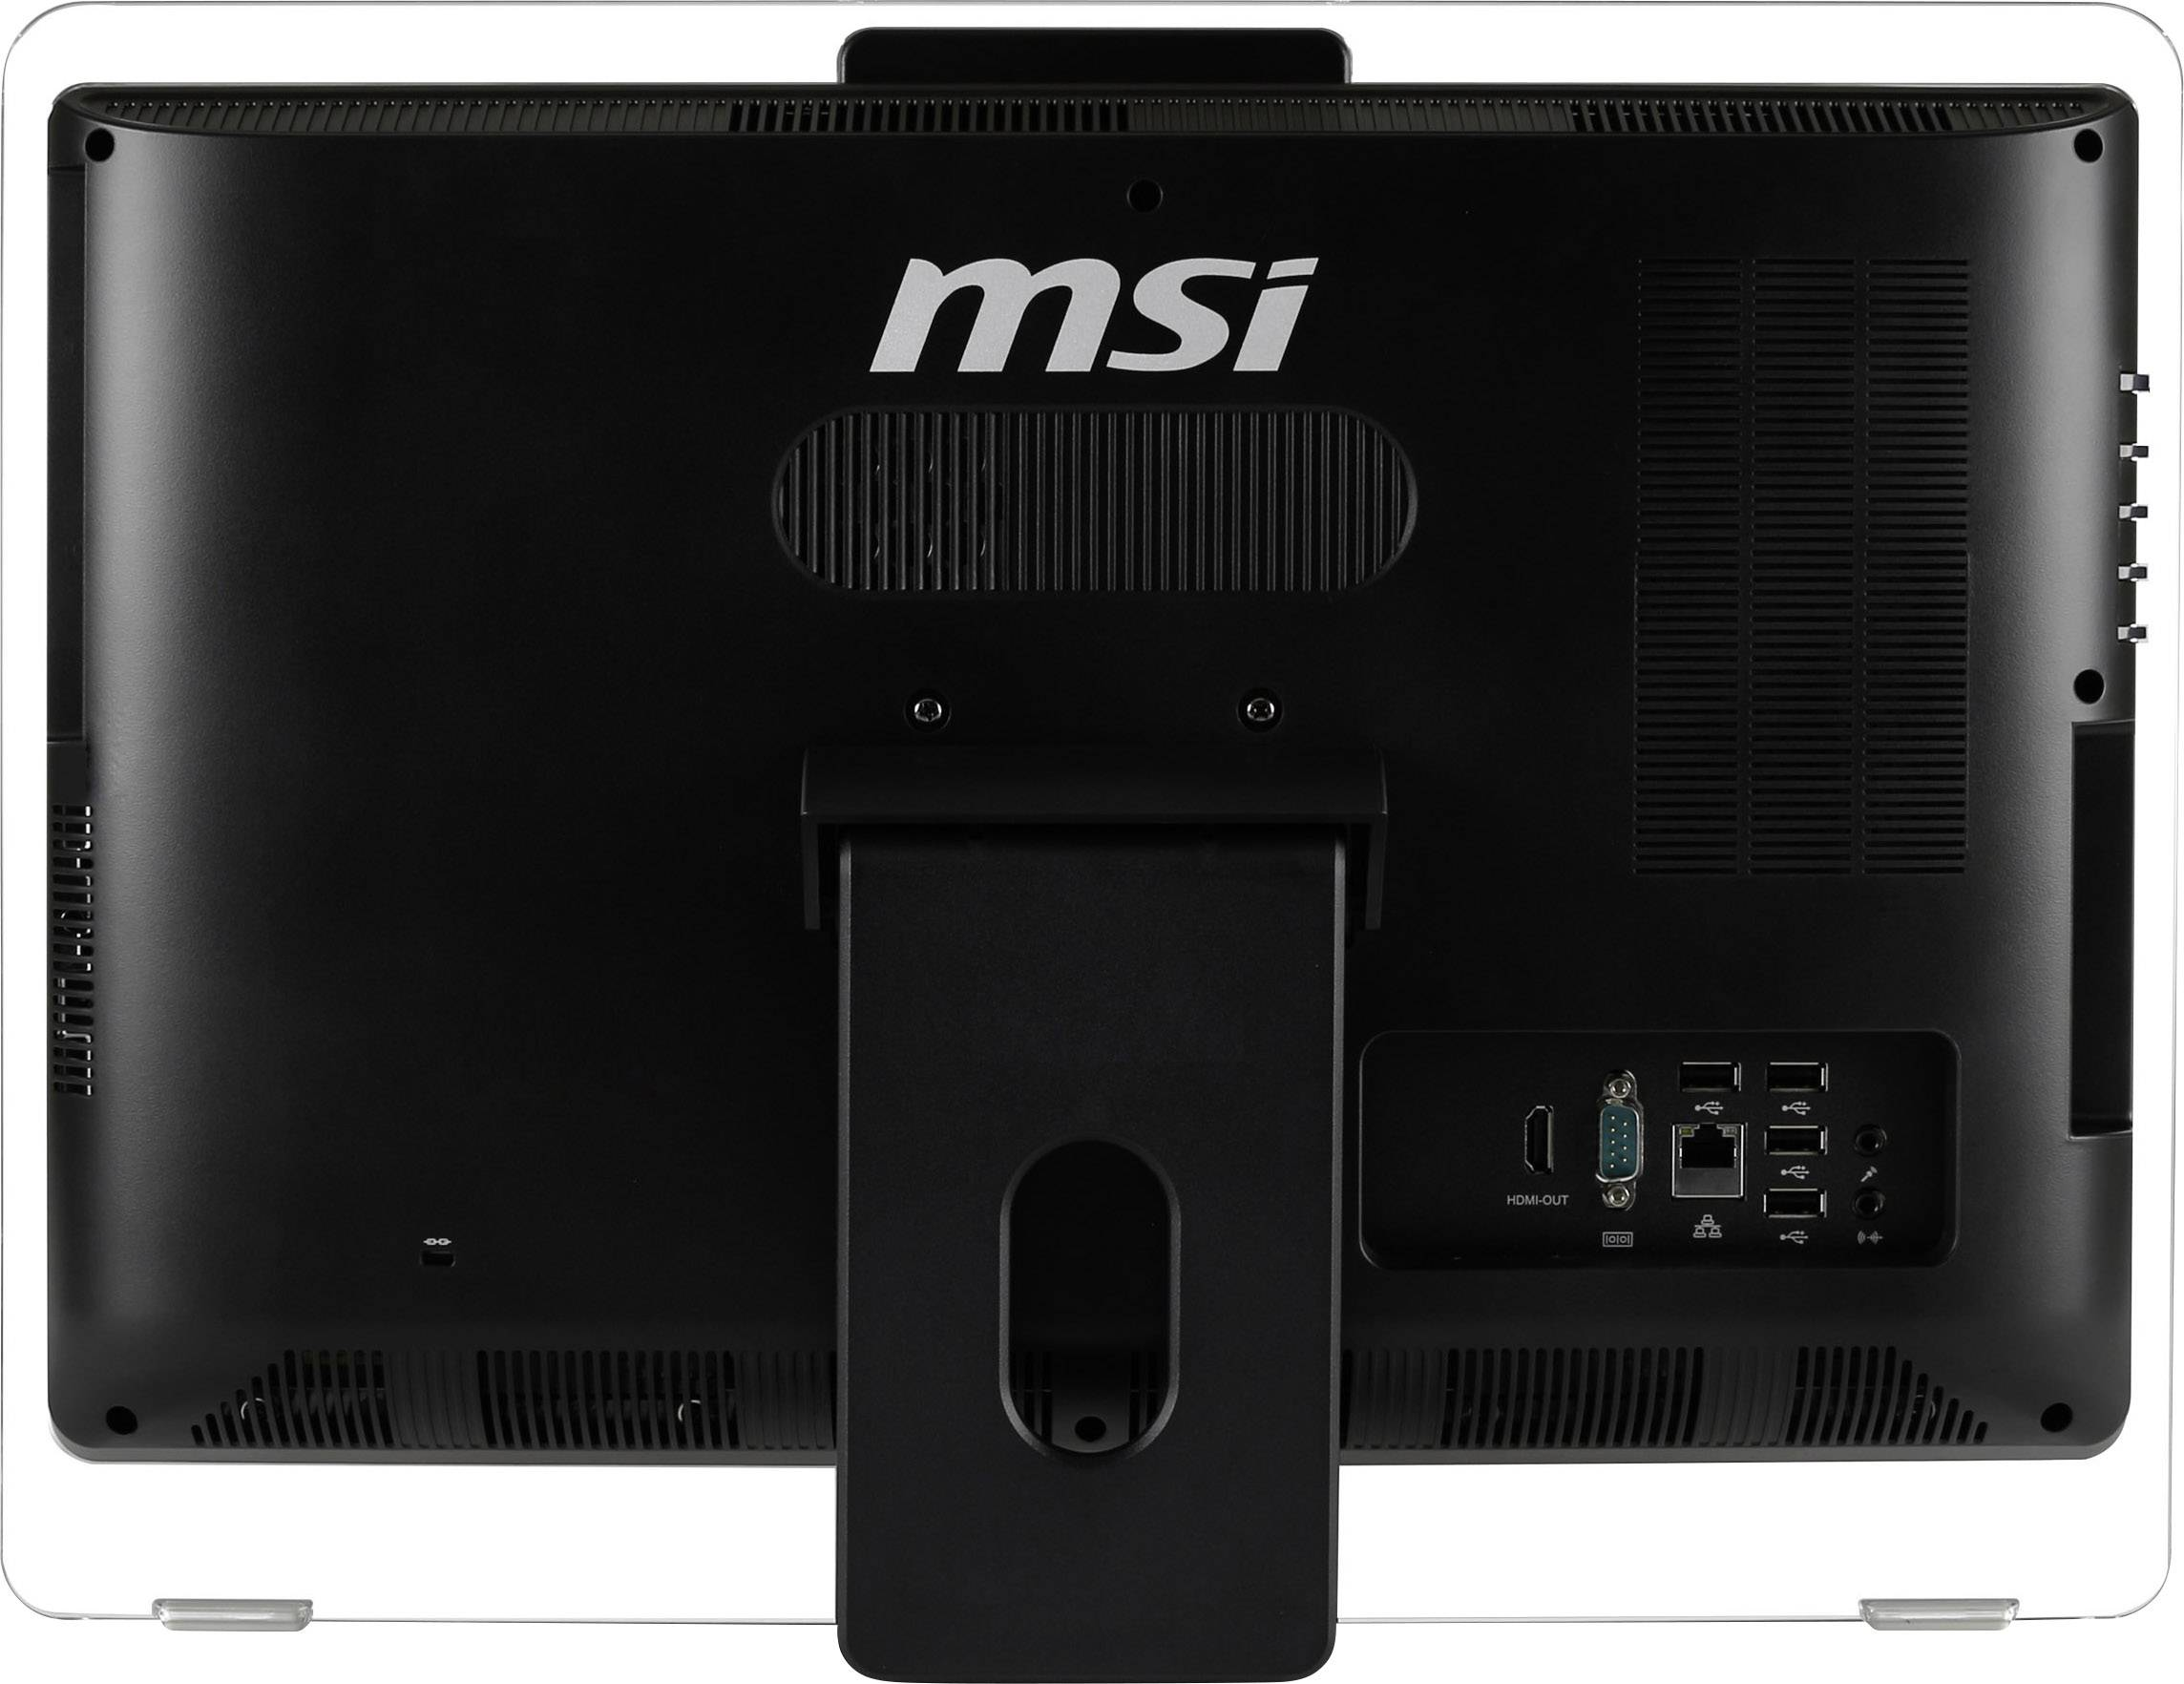 MSI Pro 24 4BW ENE CIR Windows Vista 32-BIT